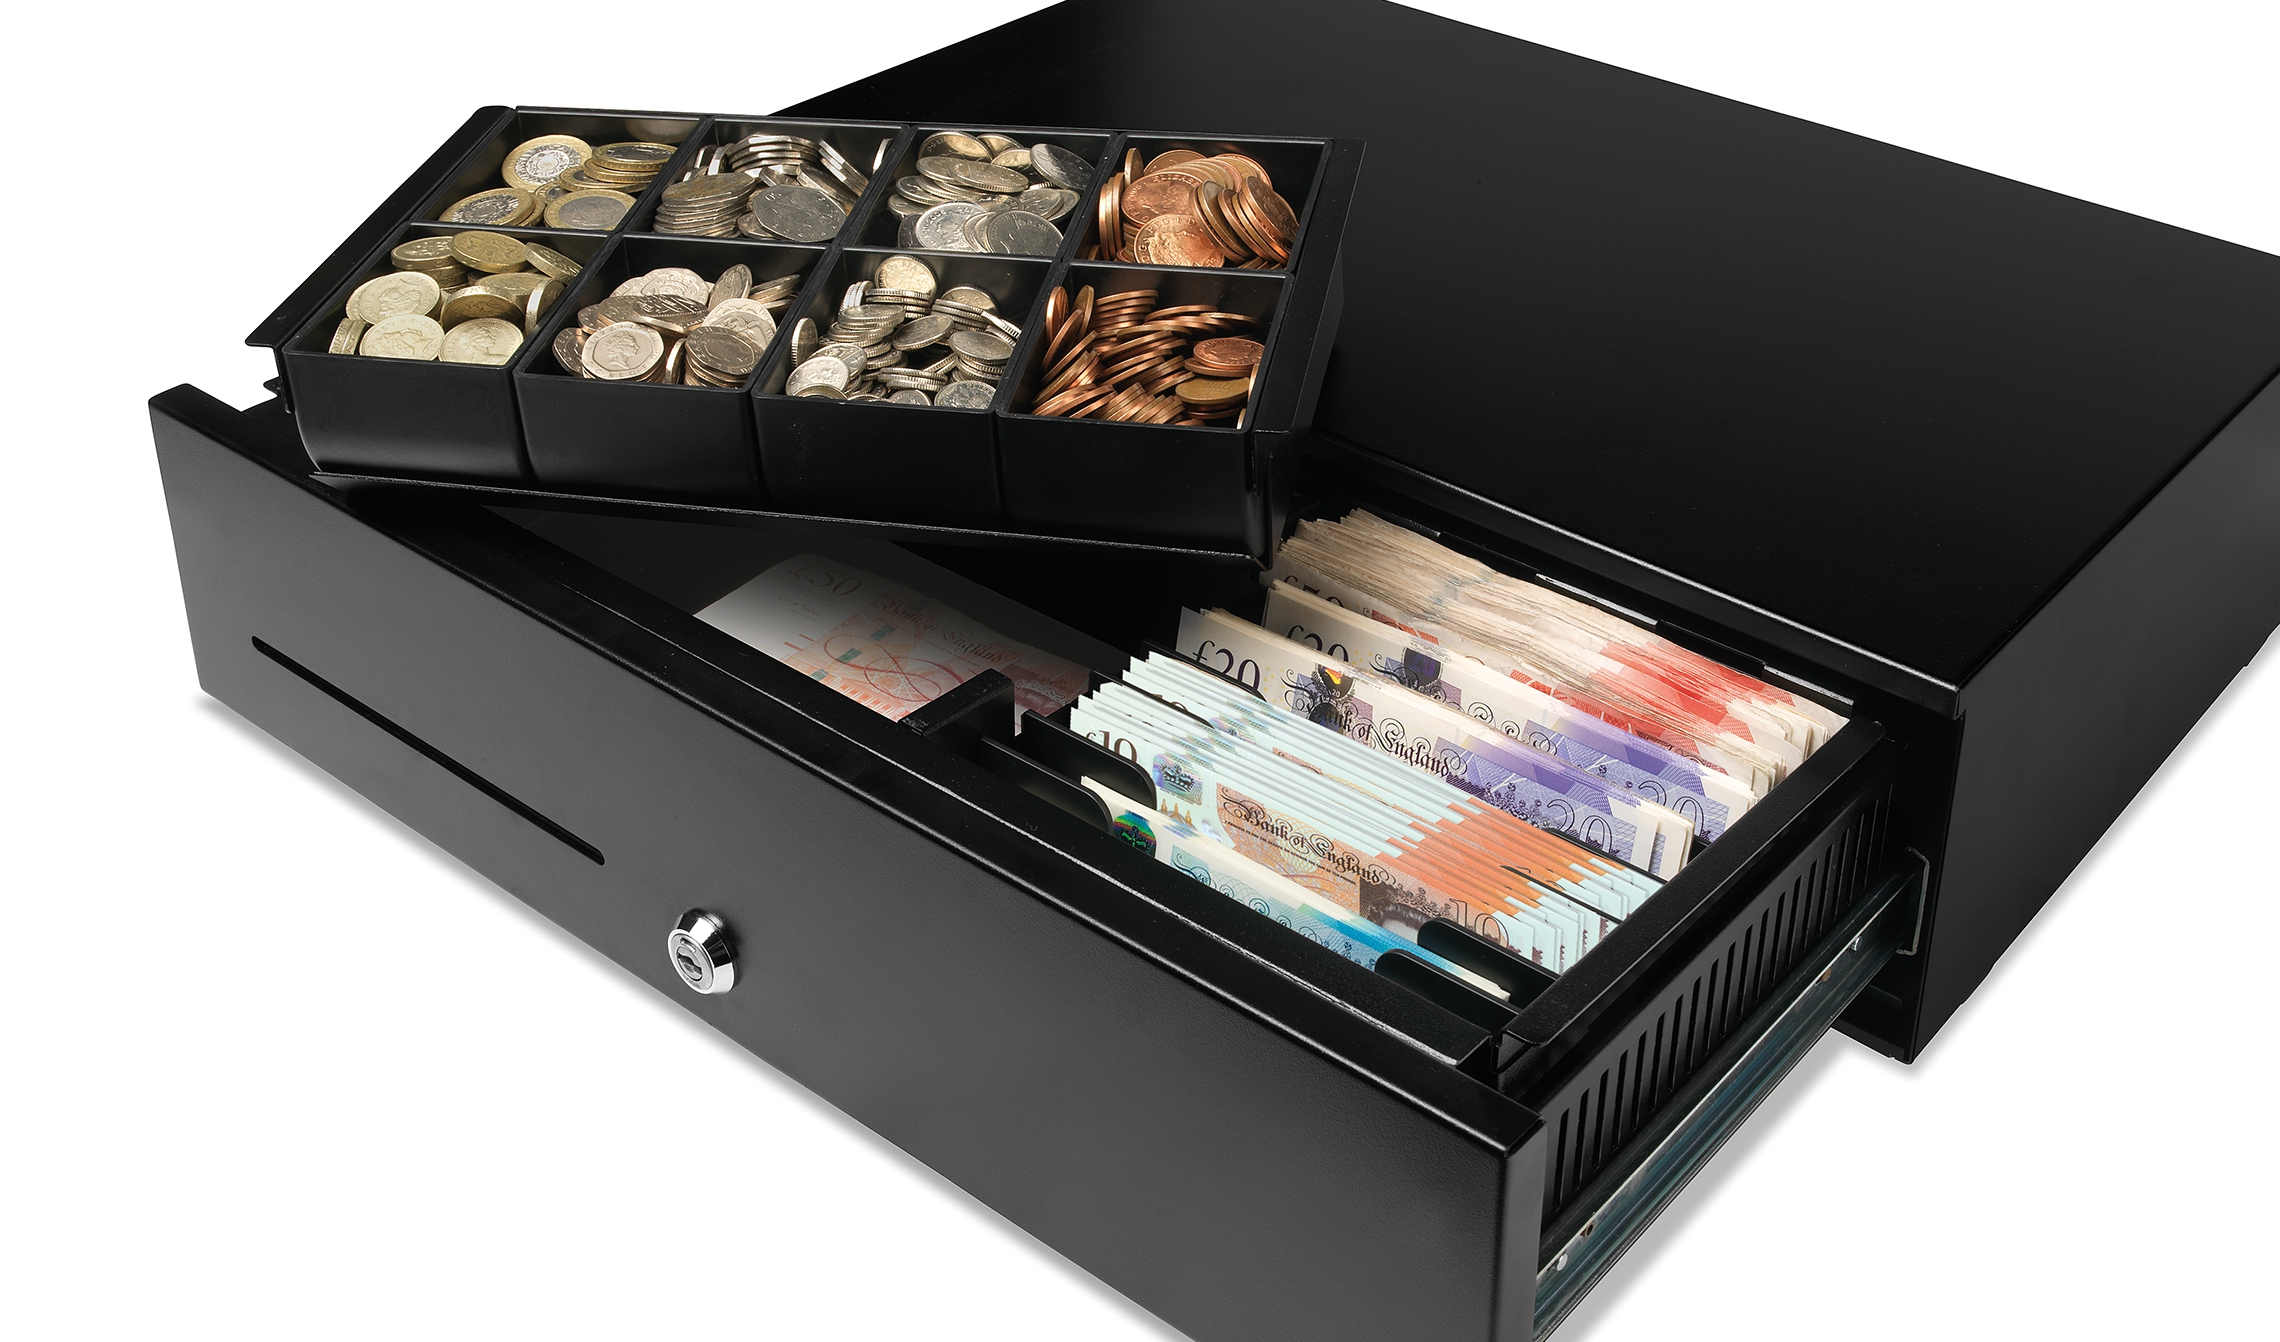 safescan-hd5030-cash-drawer